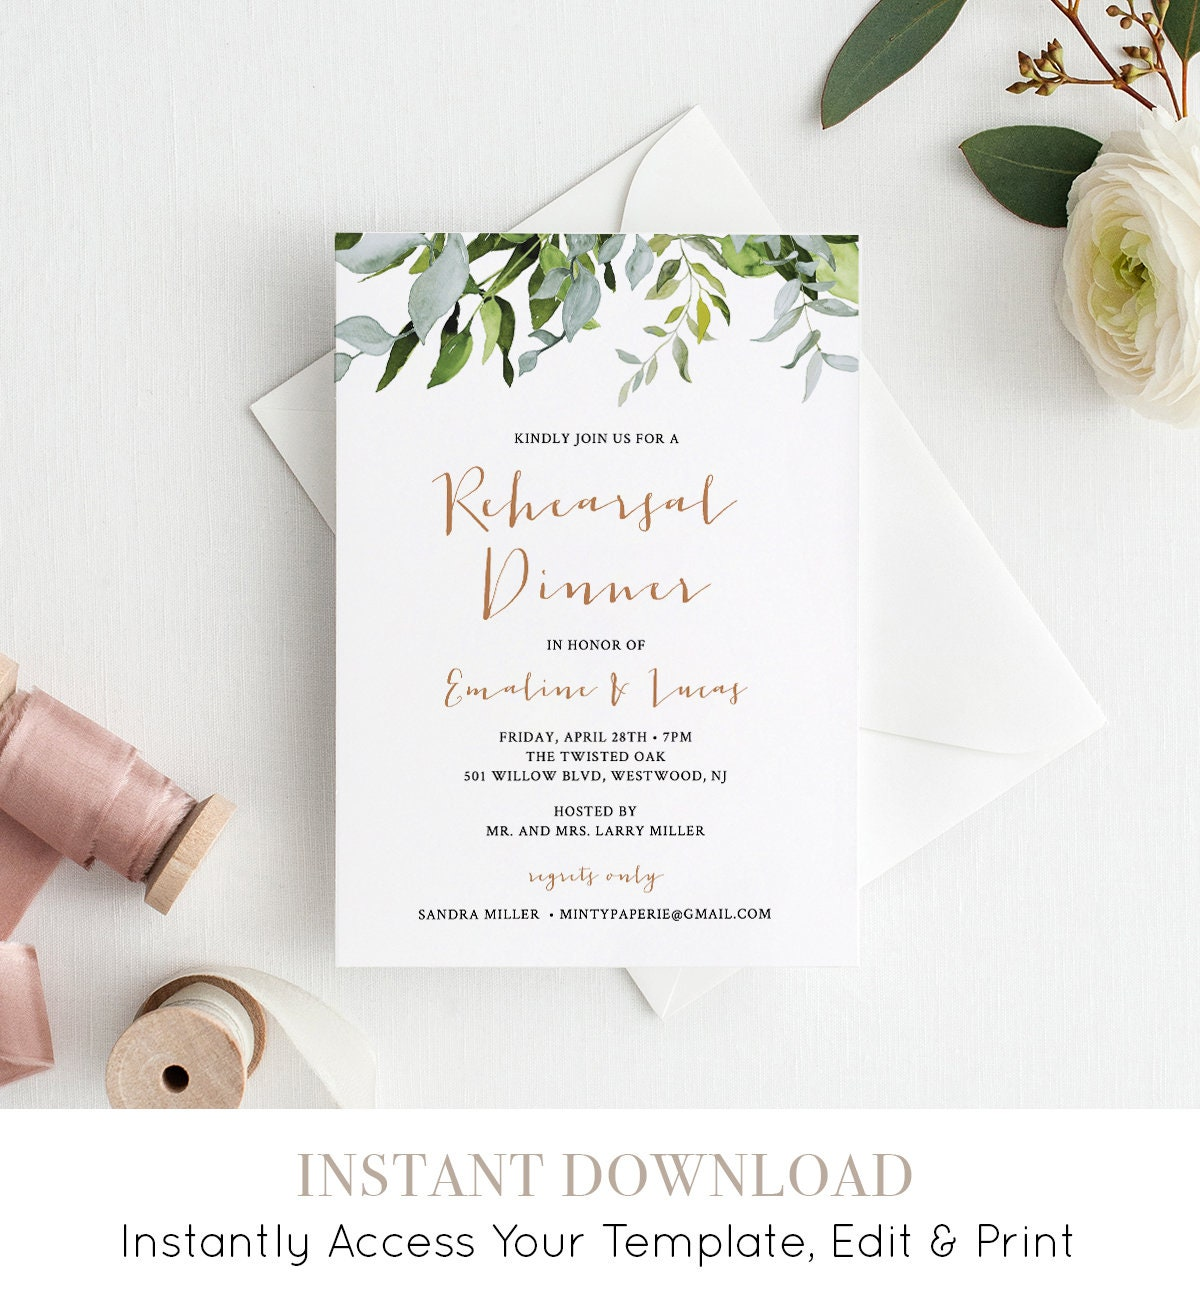 INSTANT DOWNLOAD Rehearsal Dinner Invitation Template